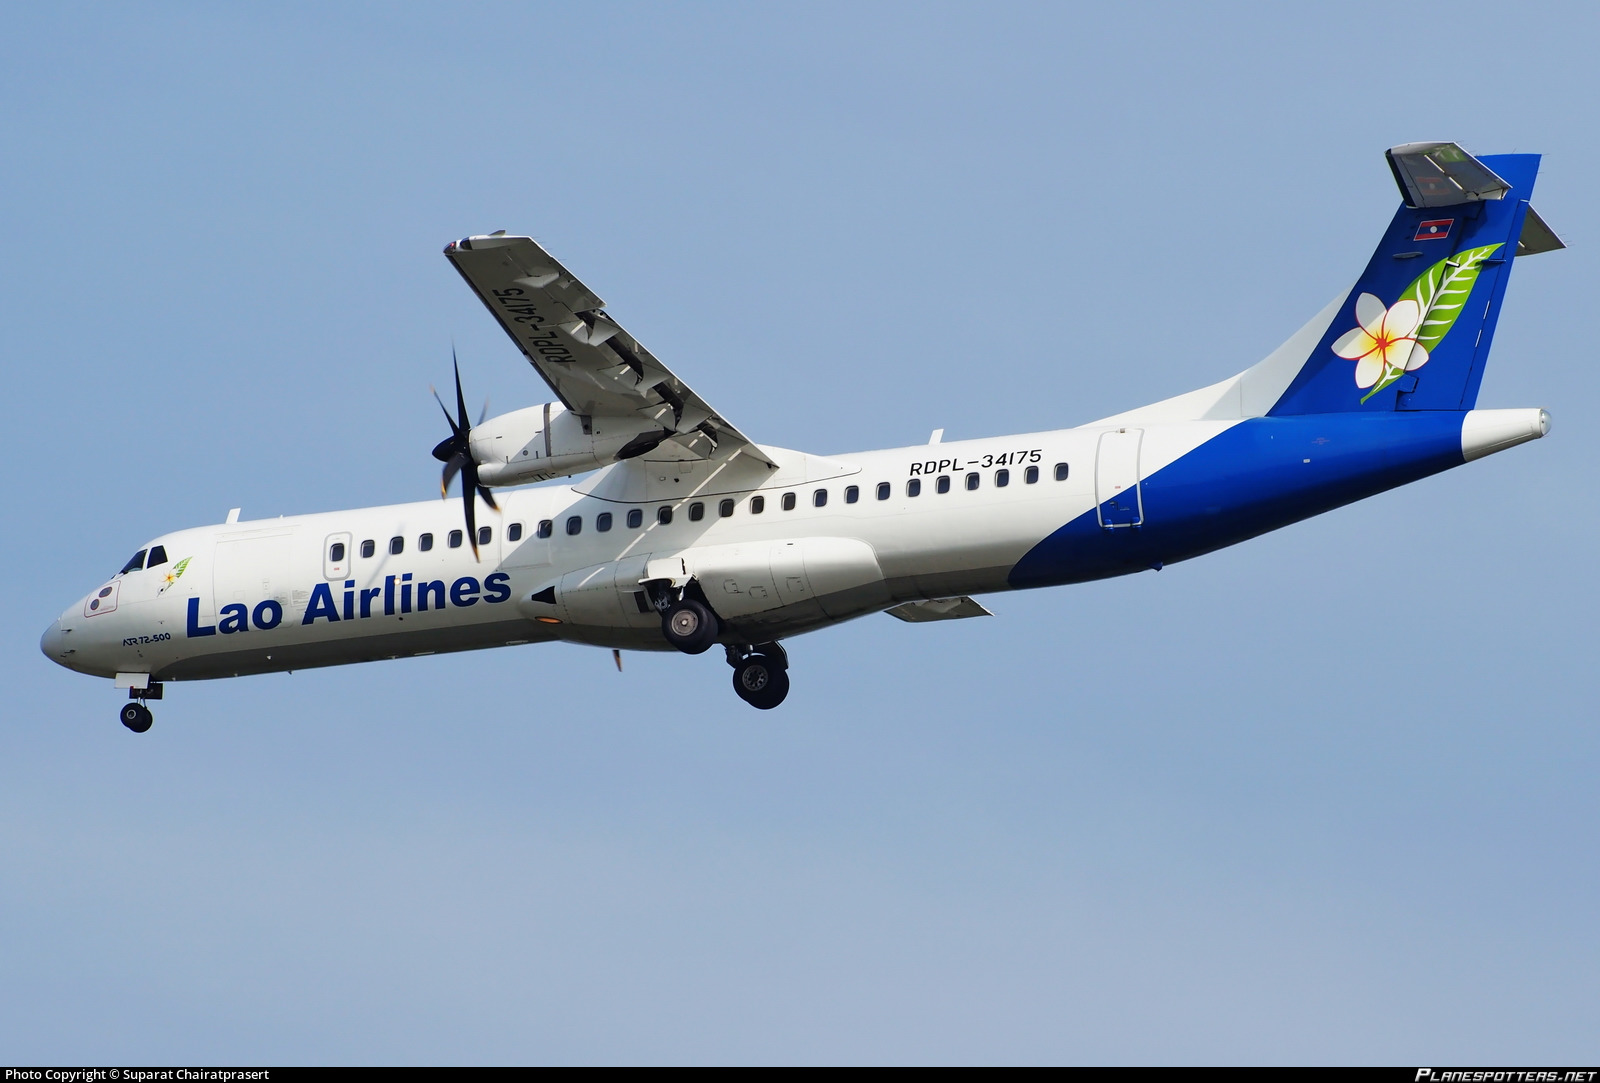 RDPL-34175 Lao Airlines ATR 72-500 (72-212A) Photo by Suparat  Chairatprasert | ID 545847 | Planespotters.net